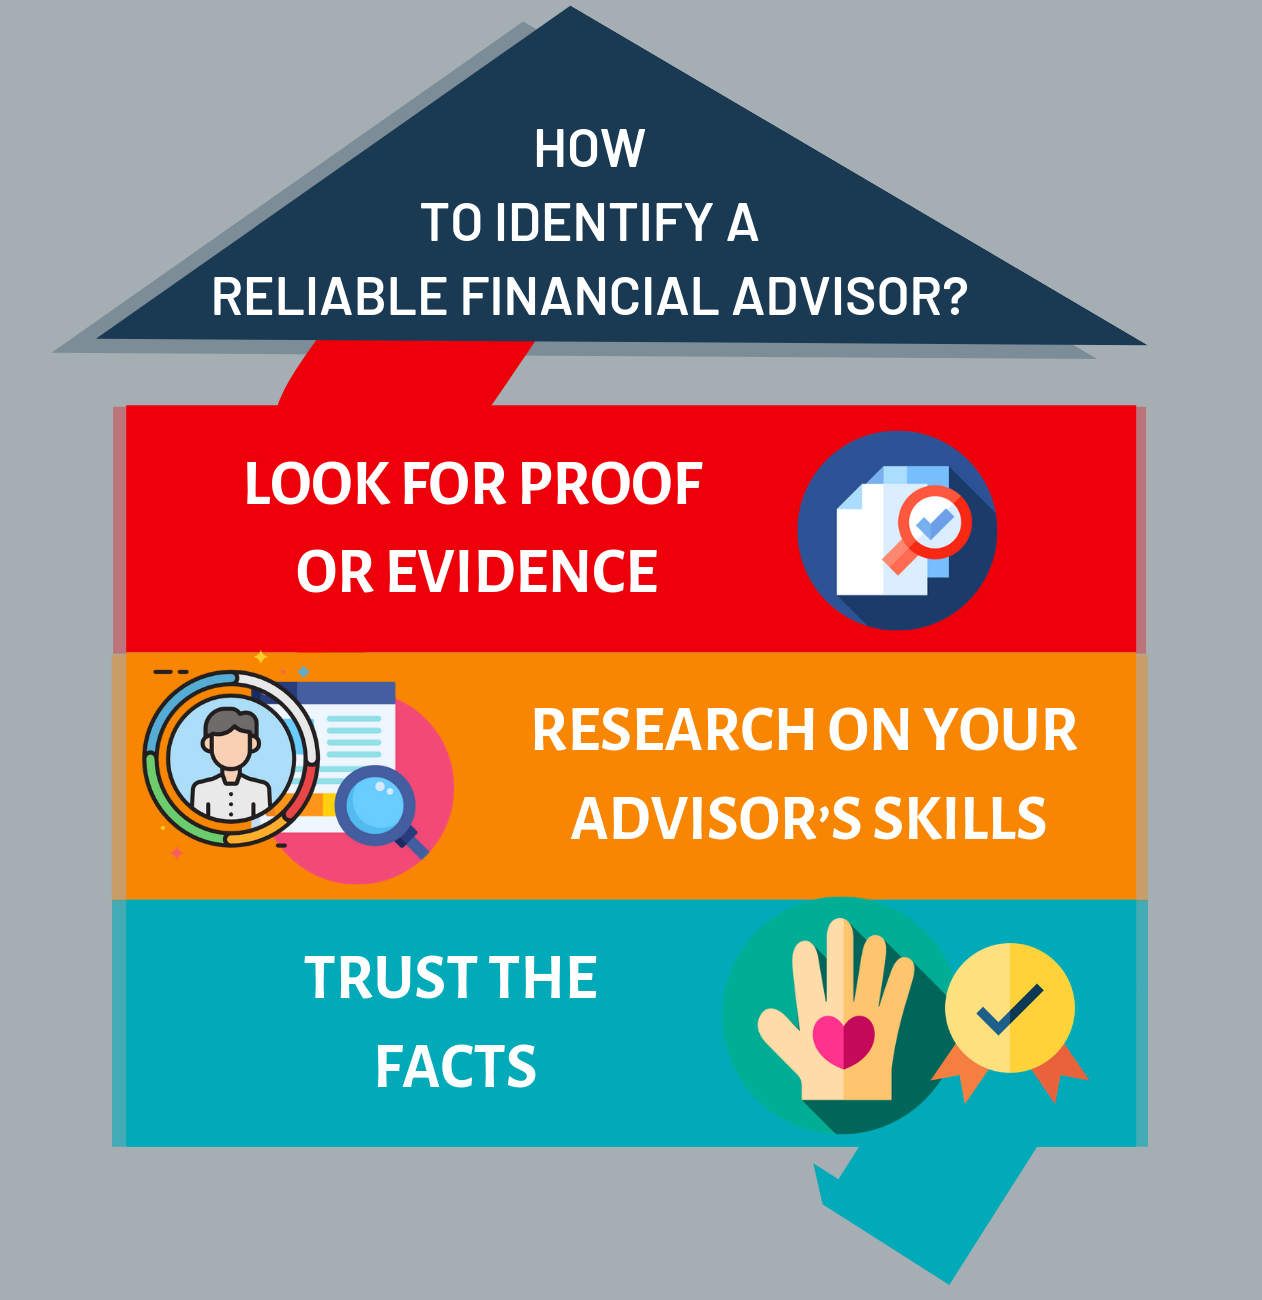 How to Identify A Reliable Financial Advisor